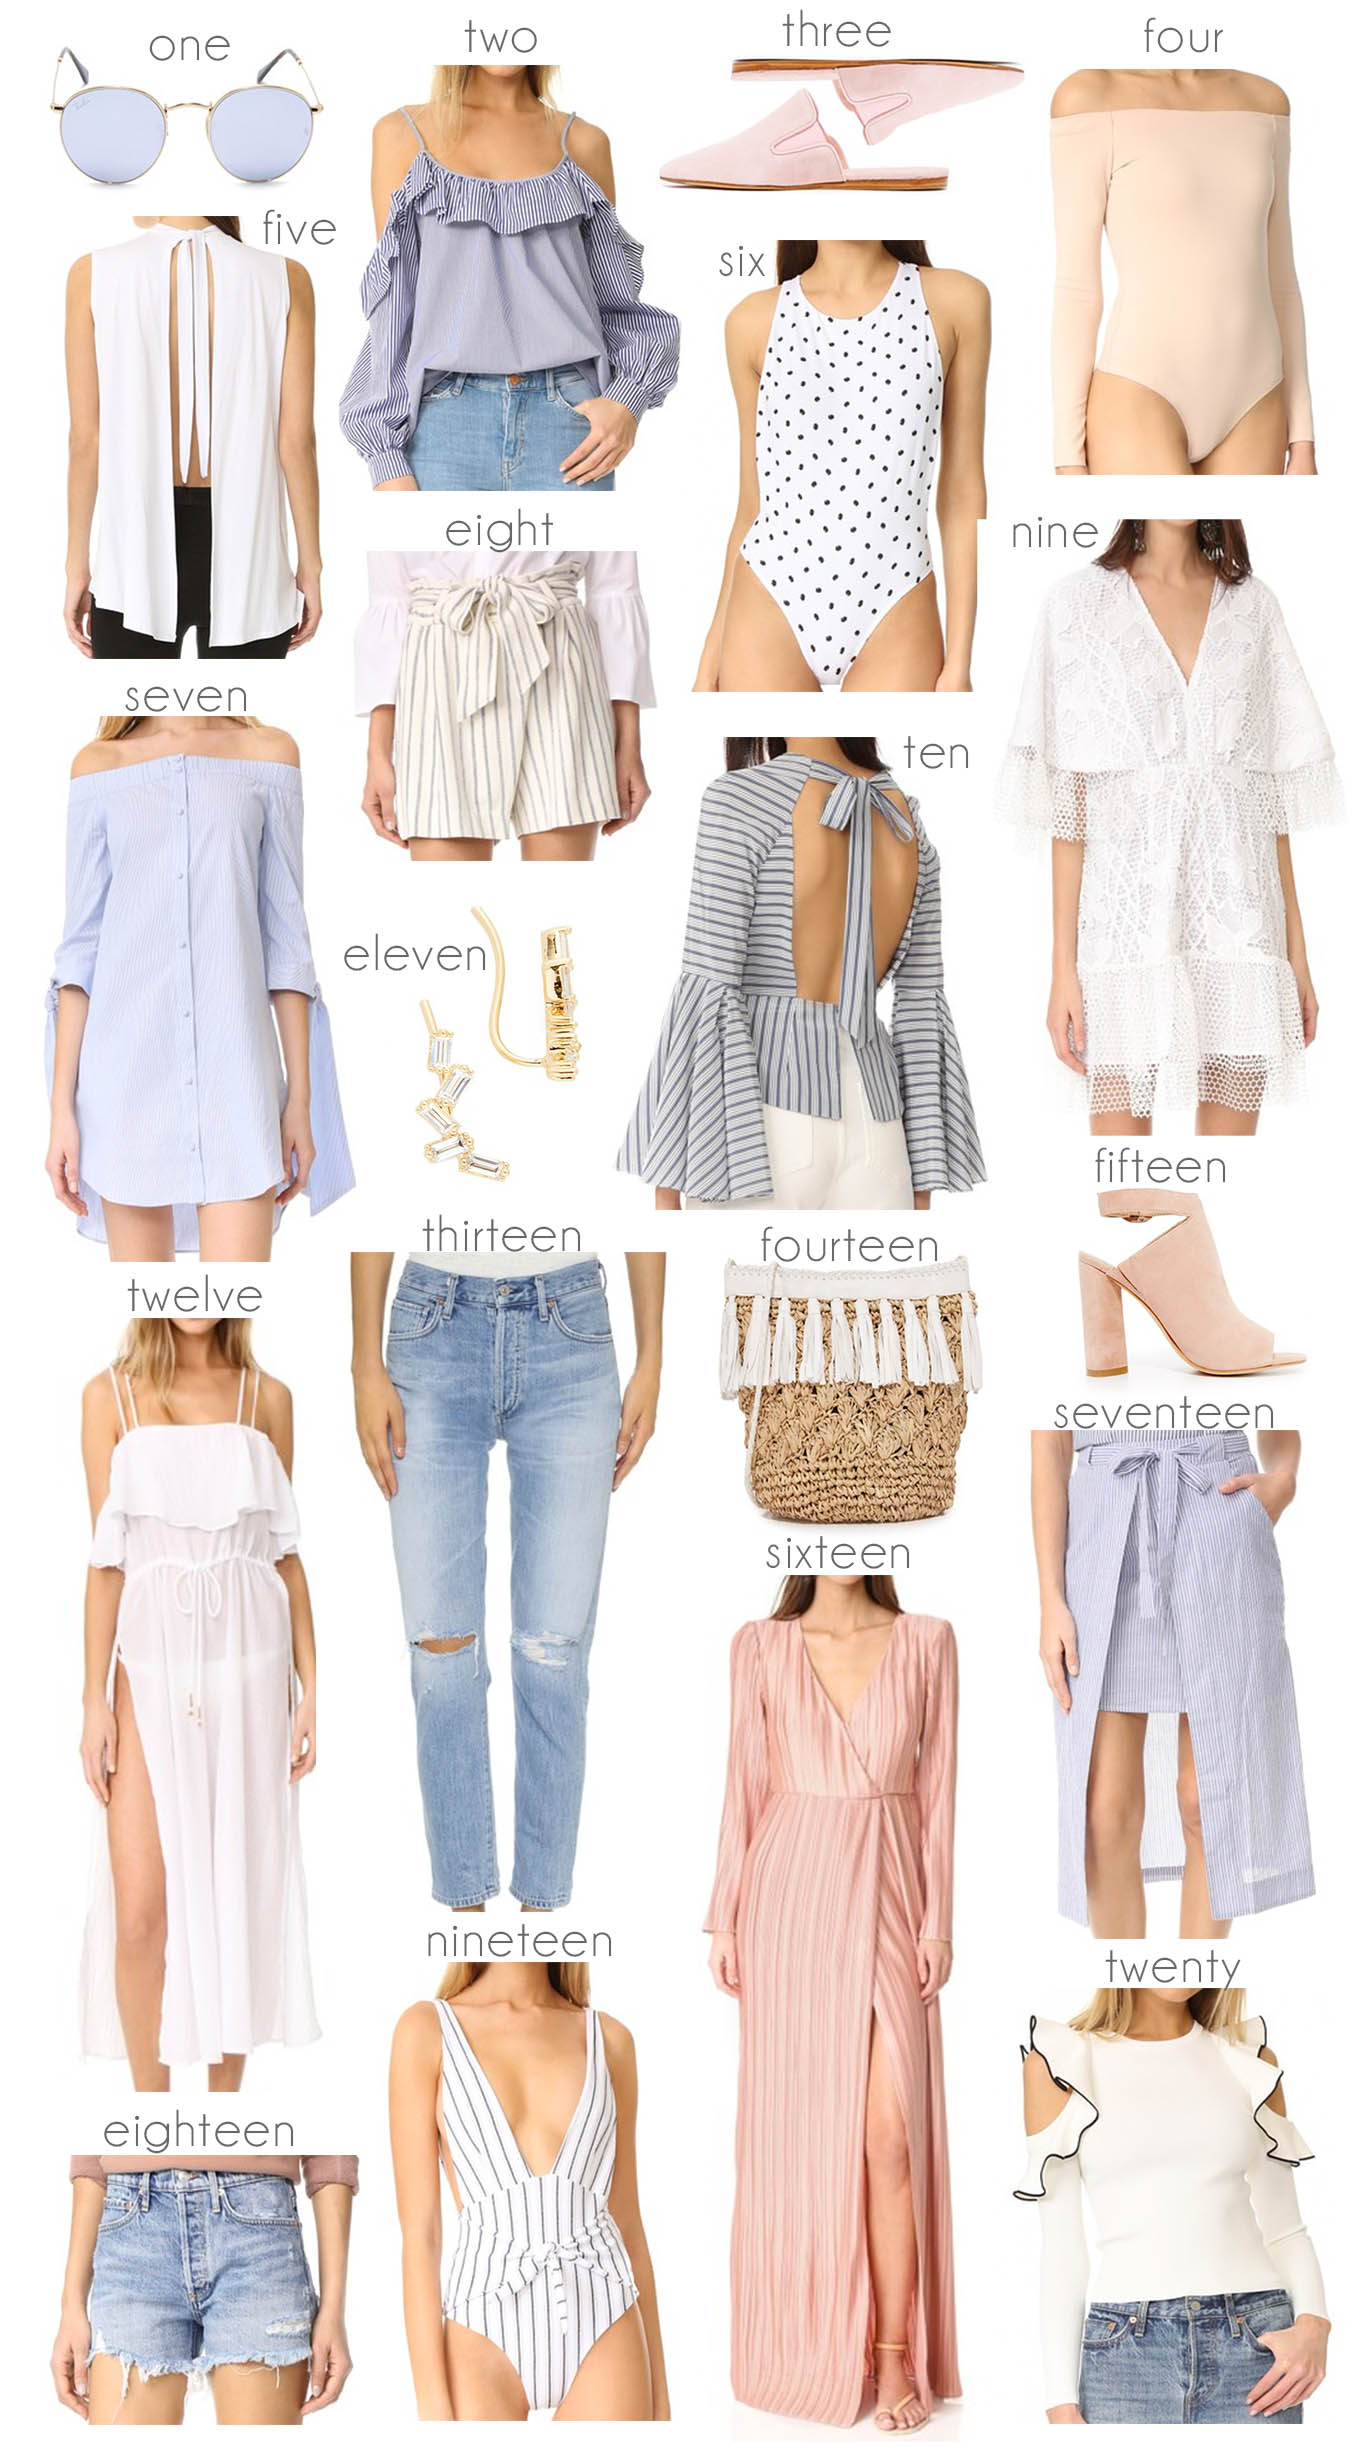 spring 2017 style trends